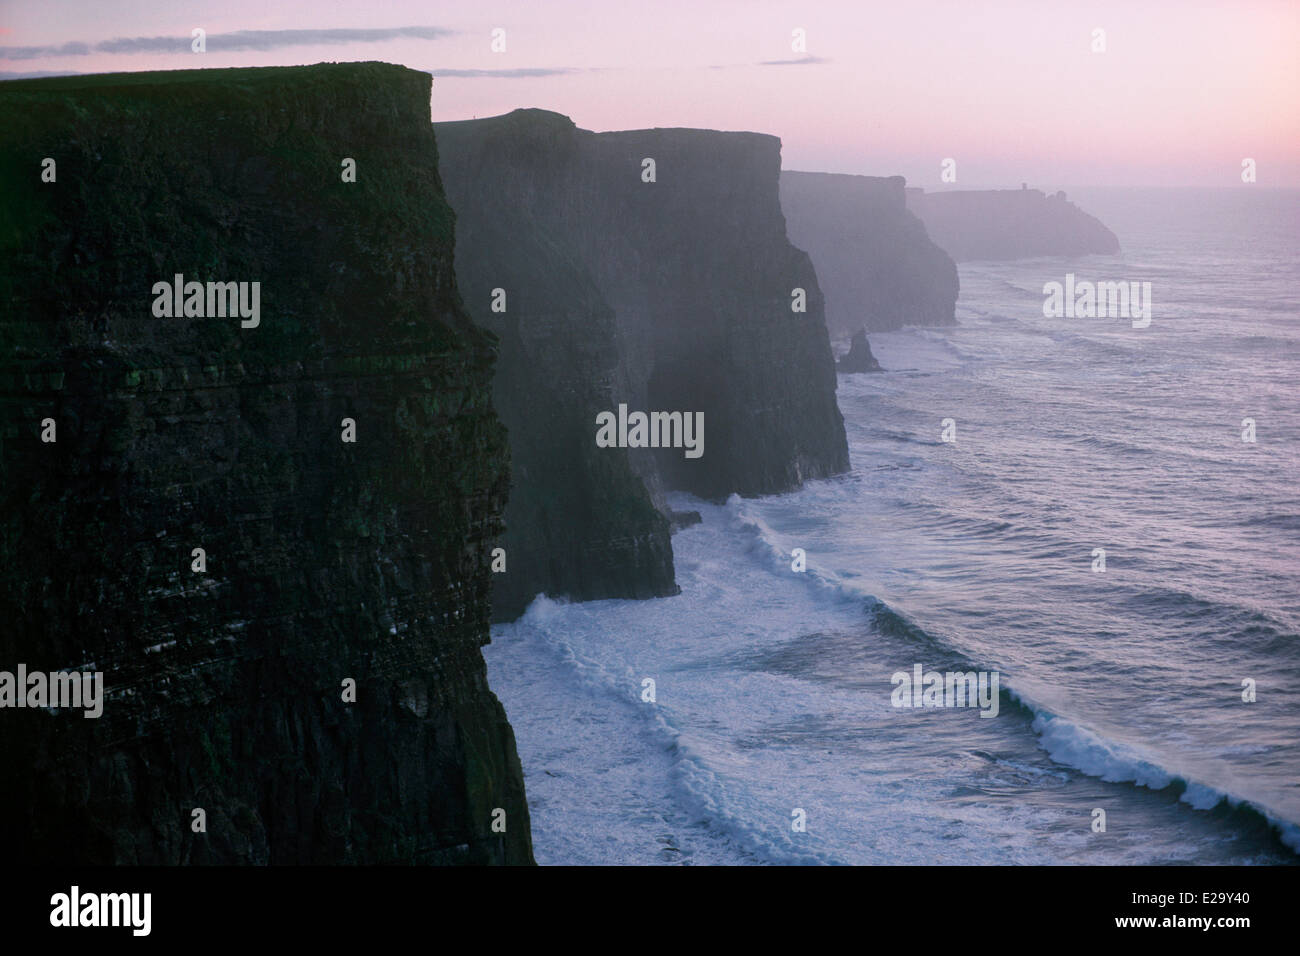 Ireland, County Clare, Cliffs of Moher - Stock Image